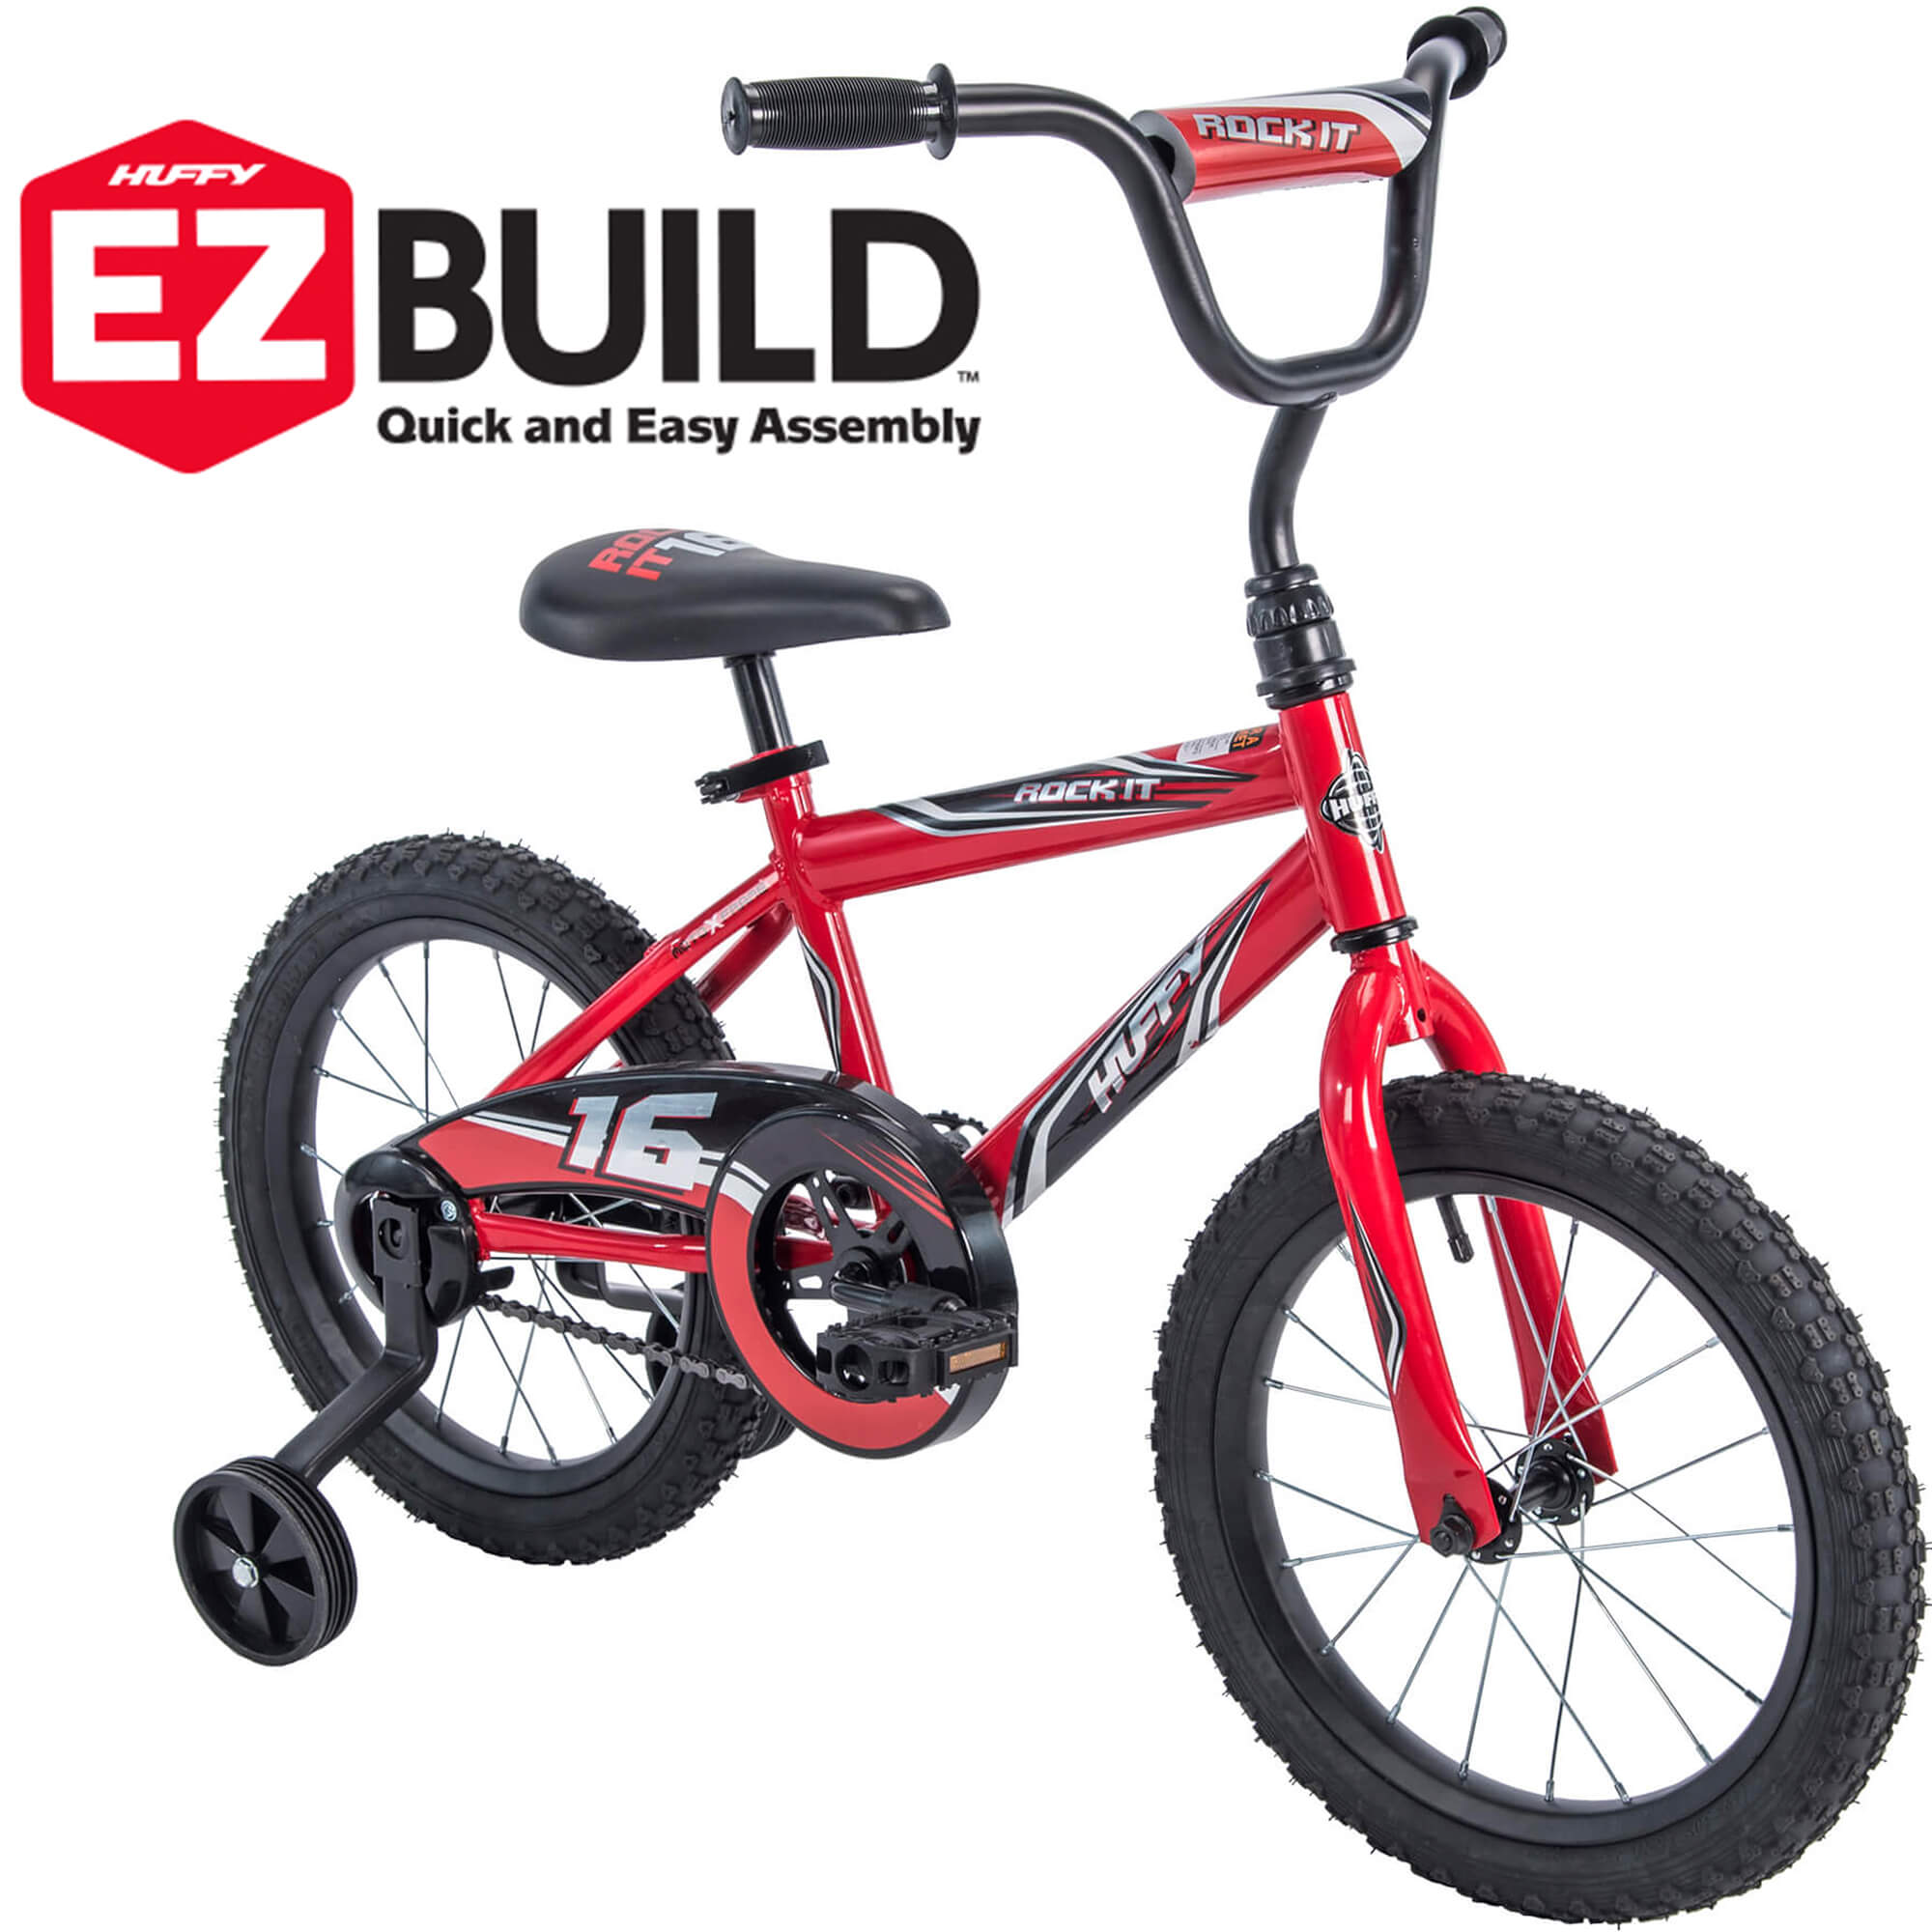 "Huffy 16"" Rock It EZ Build Bike, Red by Huffy"